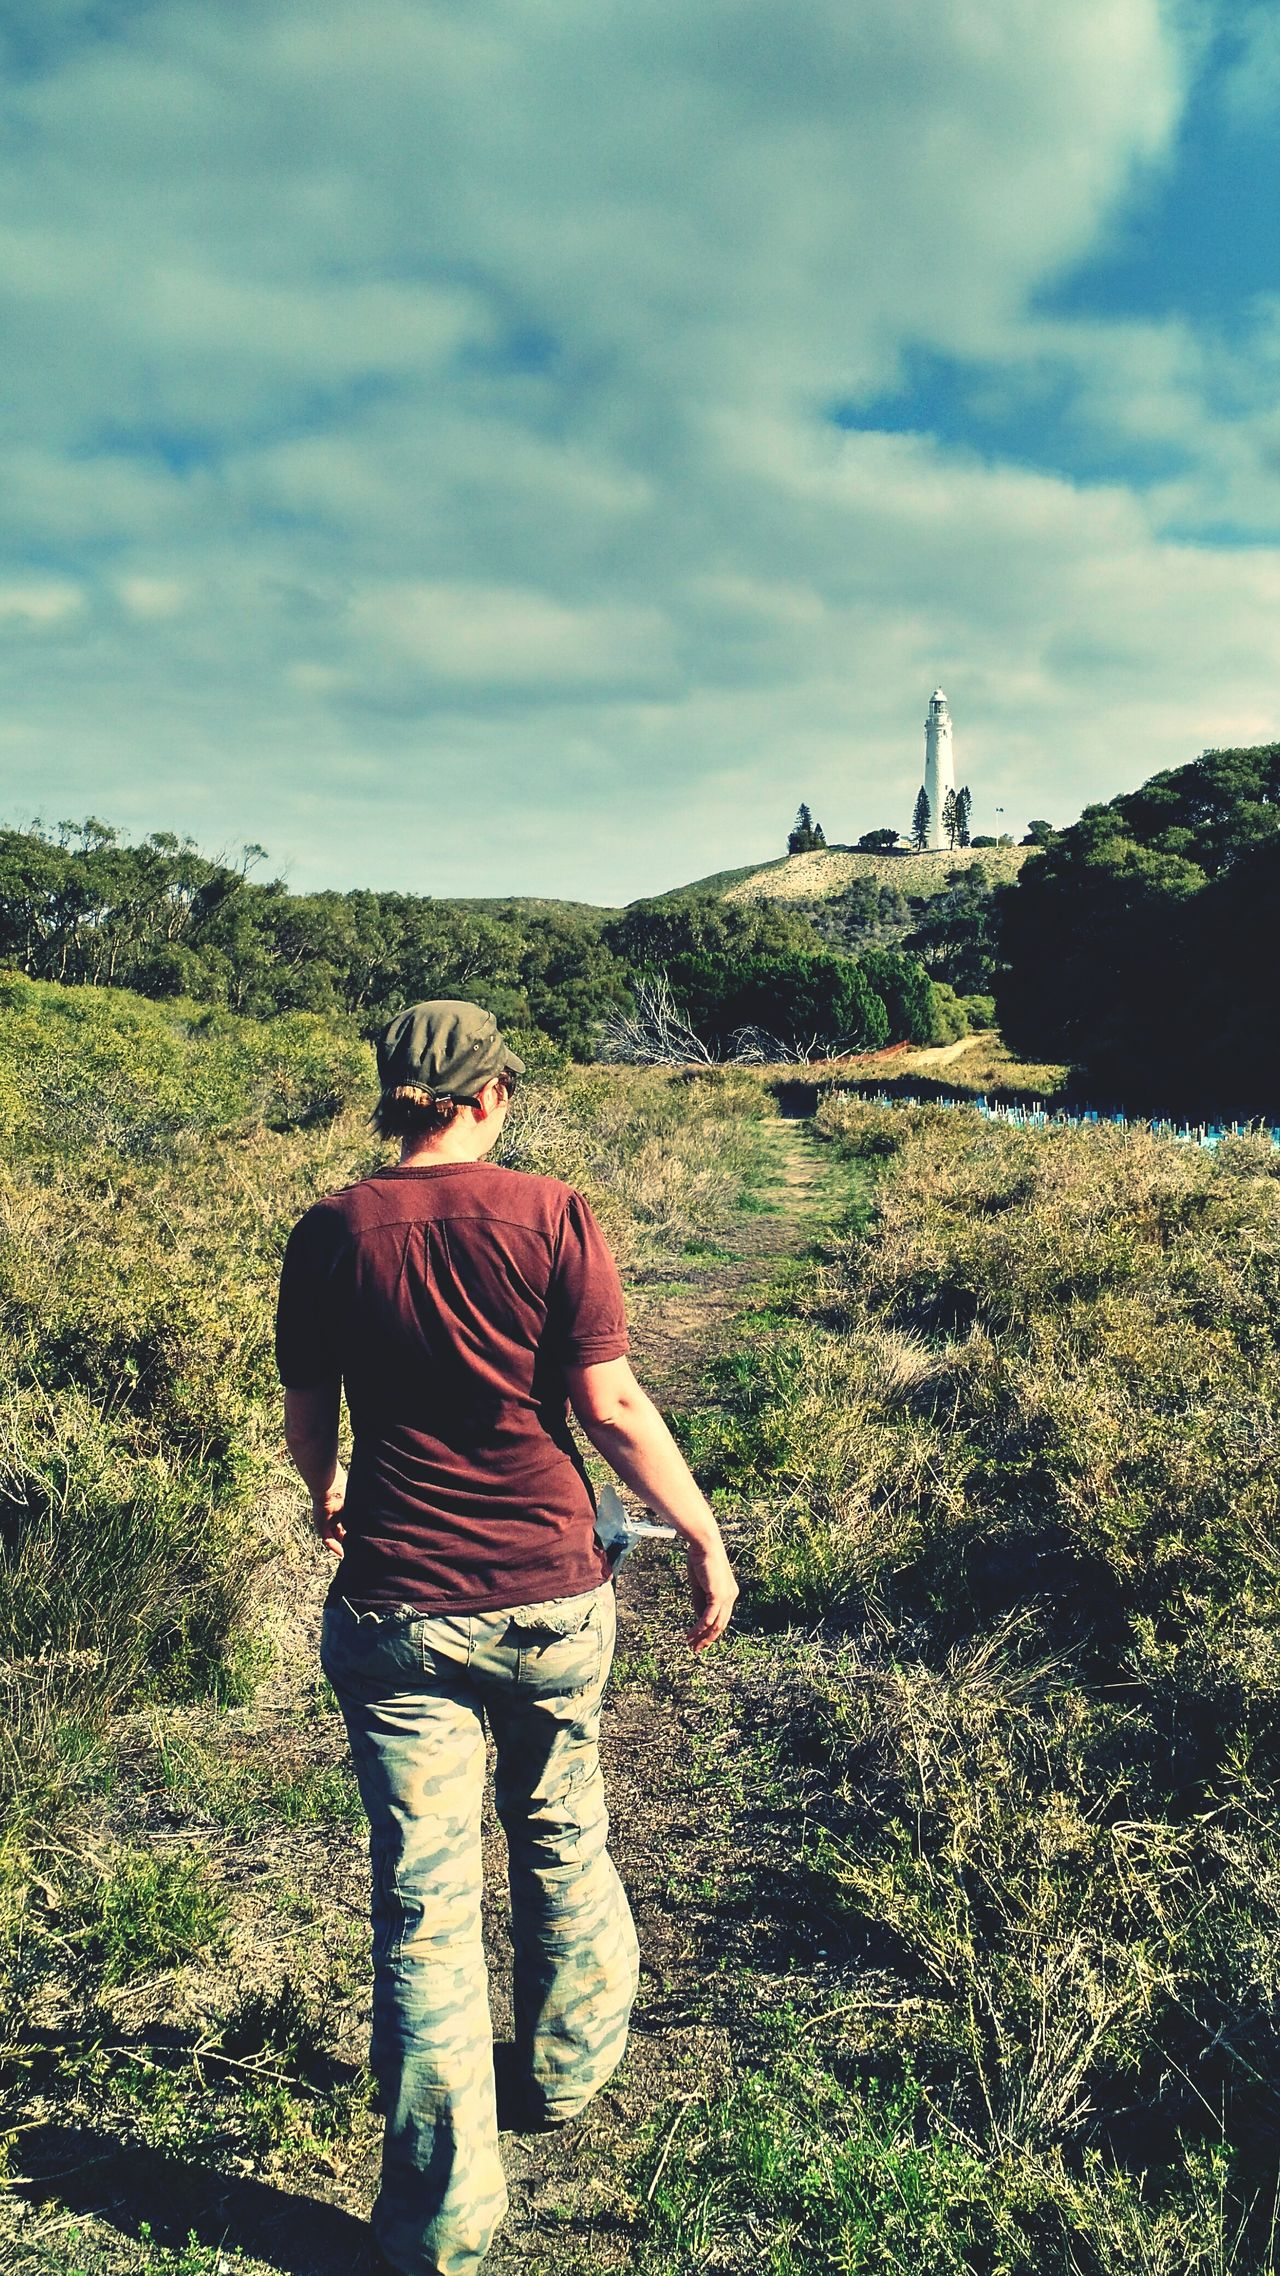 Hiking towards one of Rottnest Island's two Lighthouses. Landscape